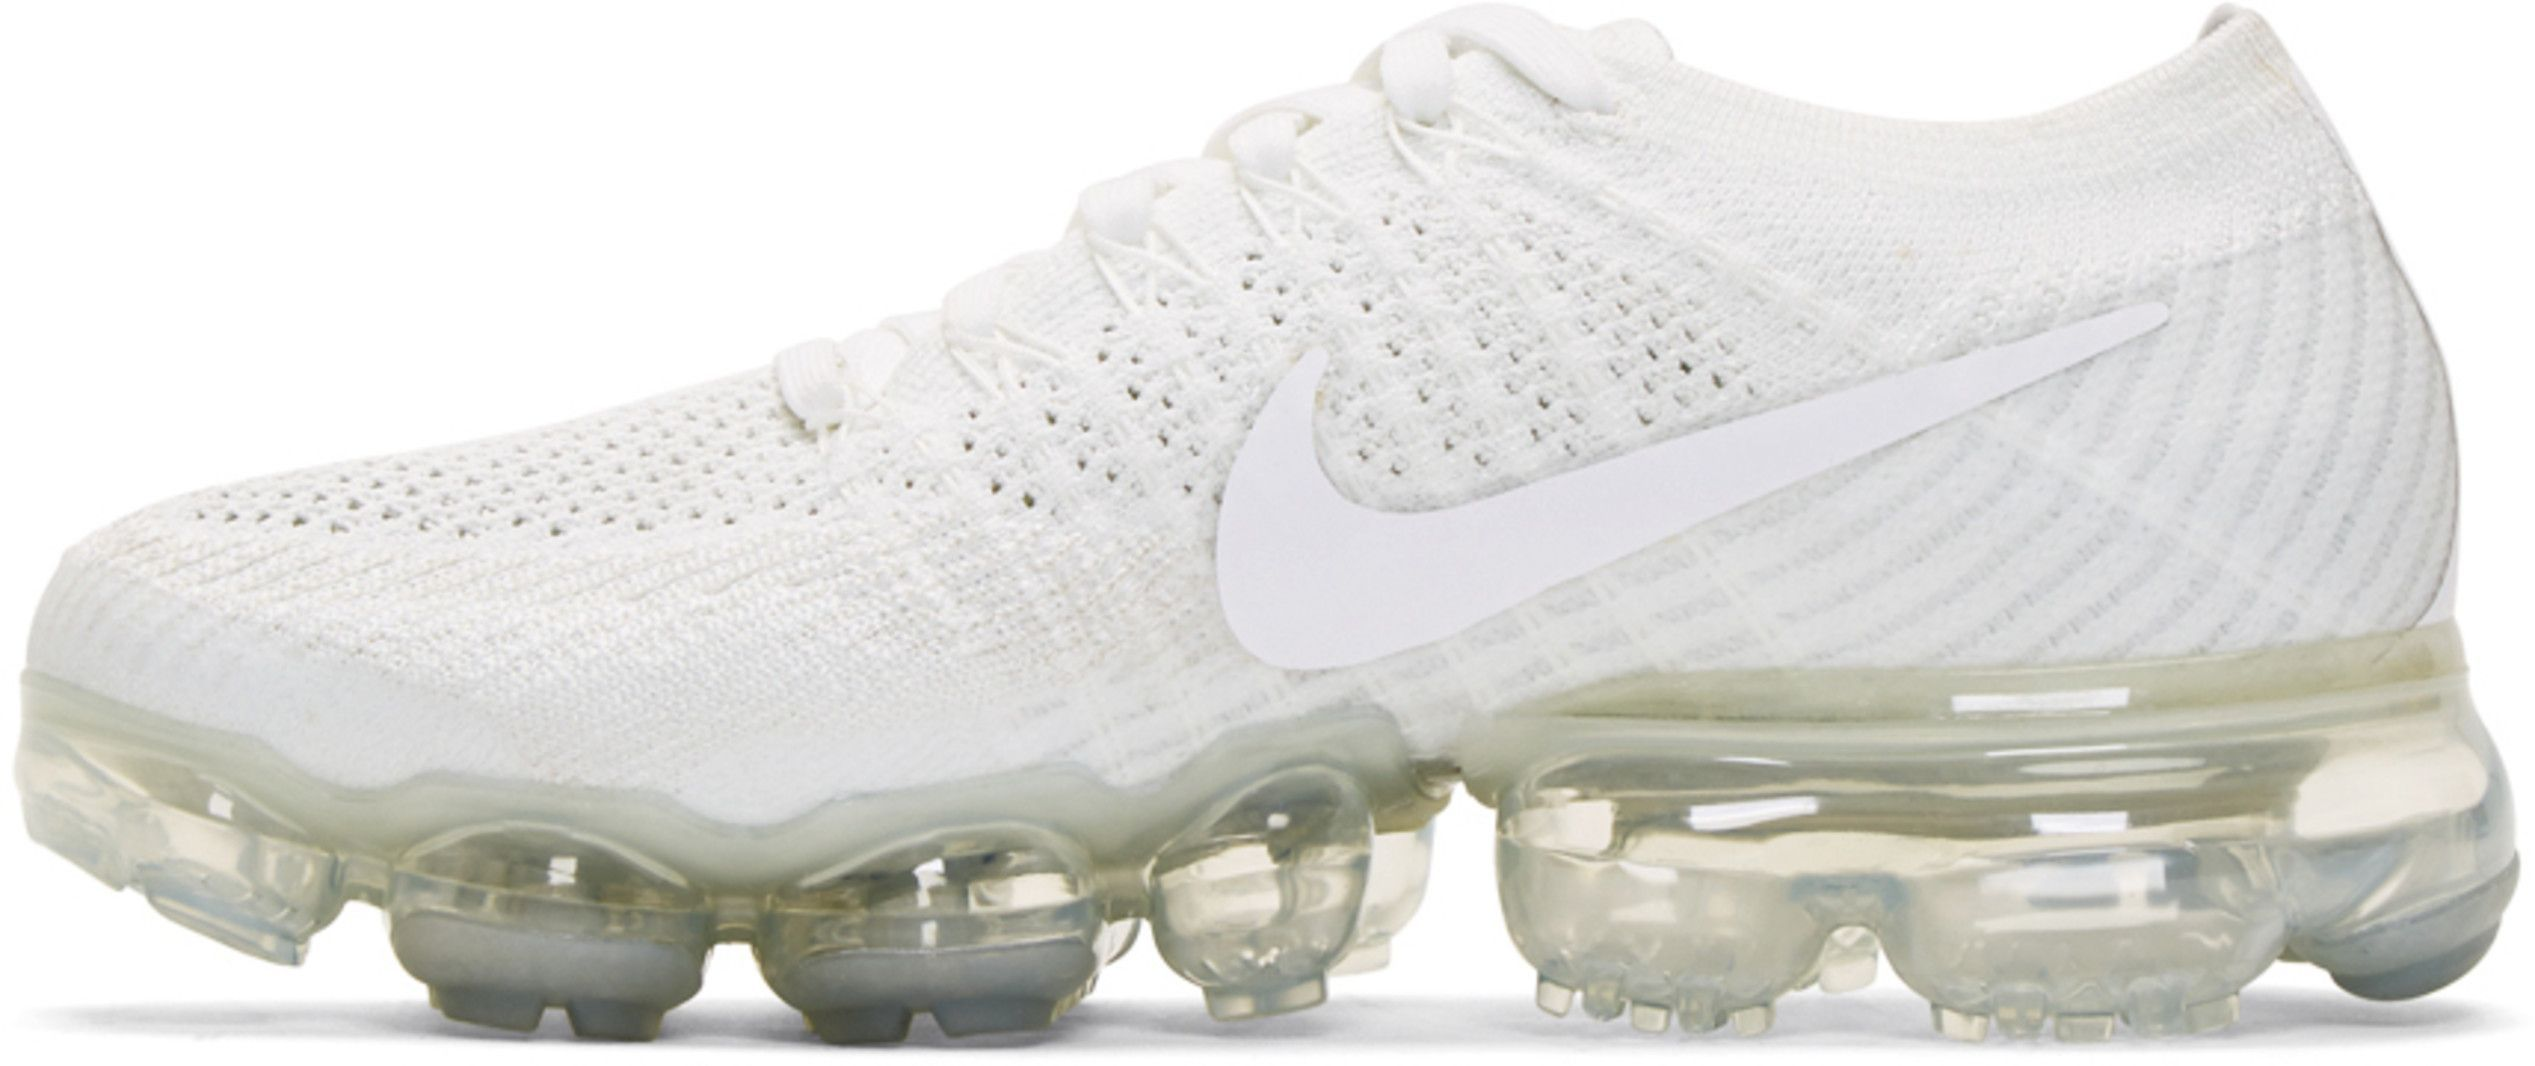 17ac5c8d68dd3 Nike - White Air VaporMax Flyknit Sneakers